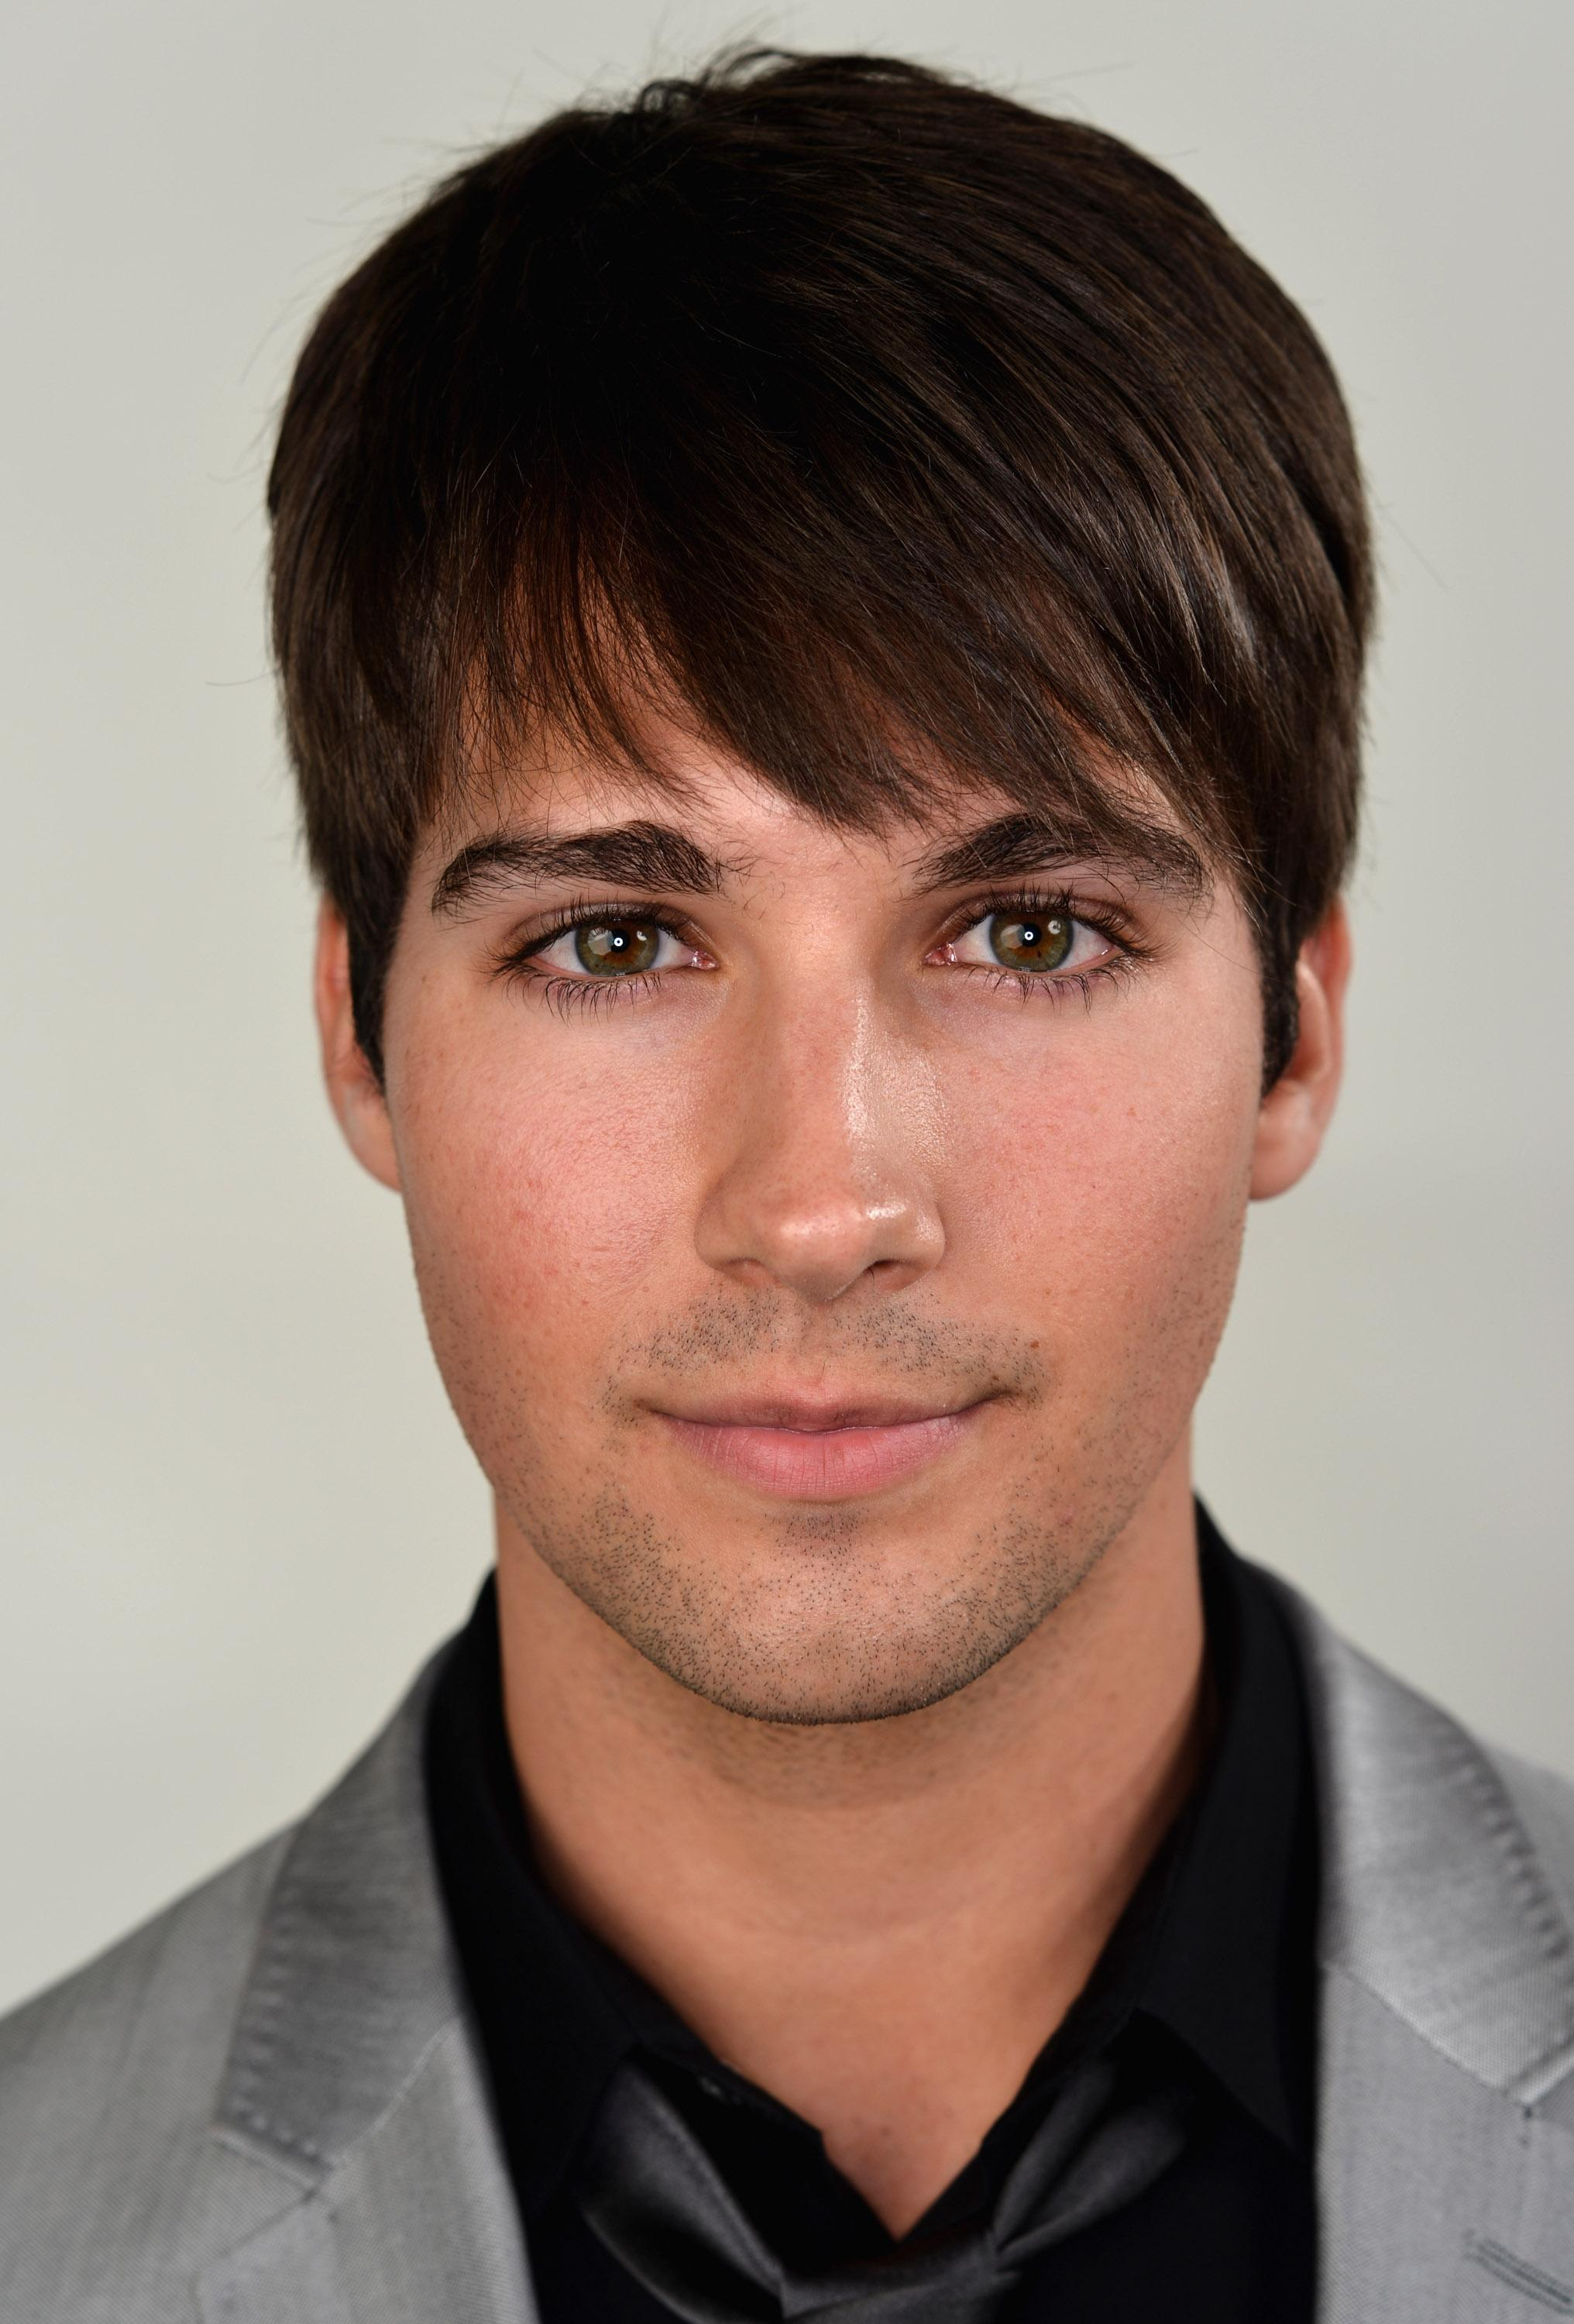 James Maslow Talks Bachelor Pads, Body Building and His